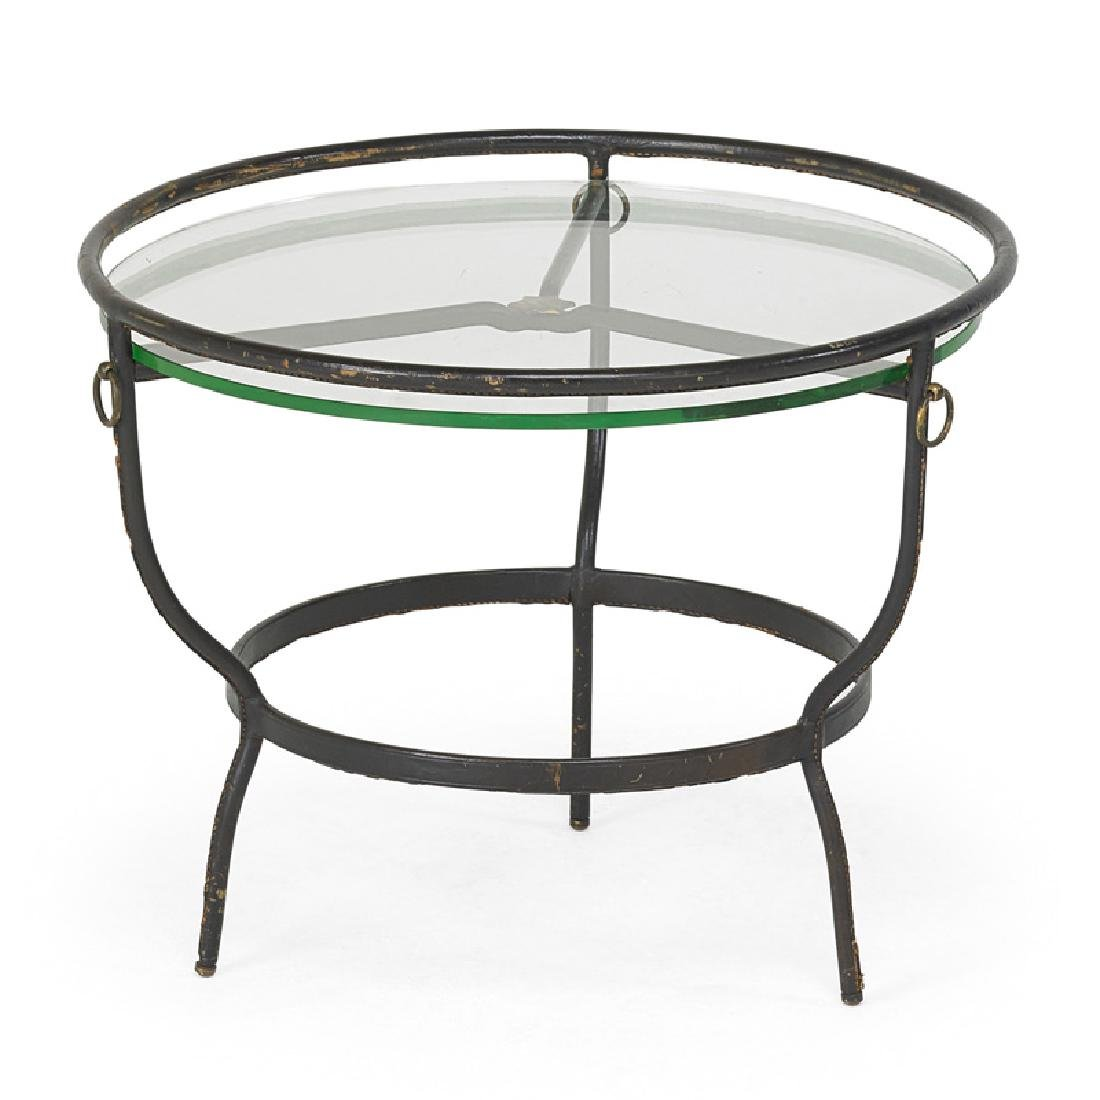 JACQUES ADNET (Attr.) Occasional table